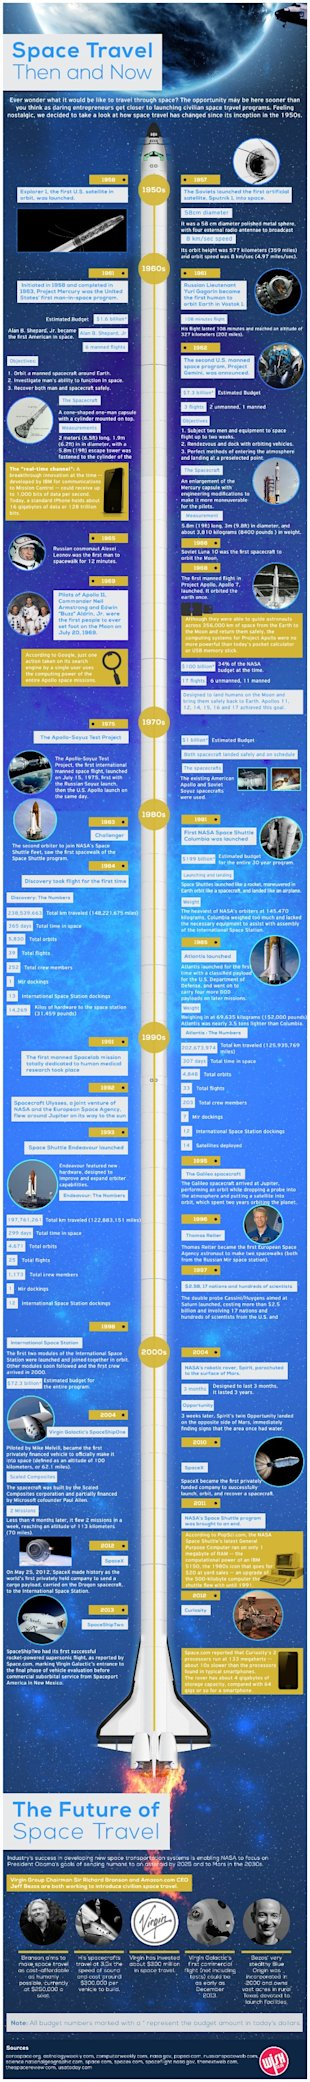 Space Travel Then and Now [Infographic] image Space Travel revised2